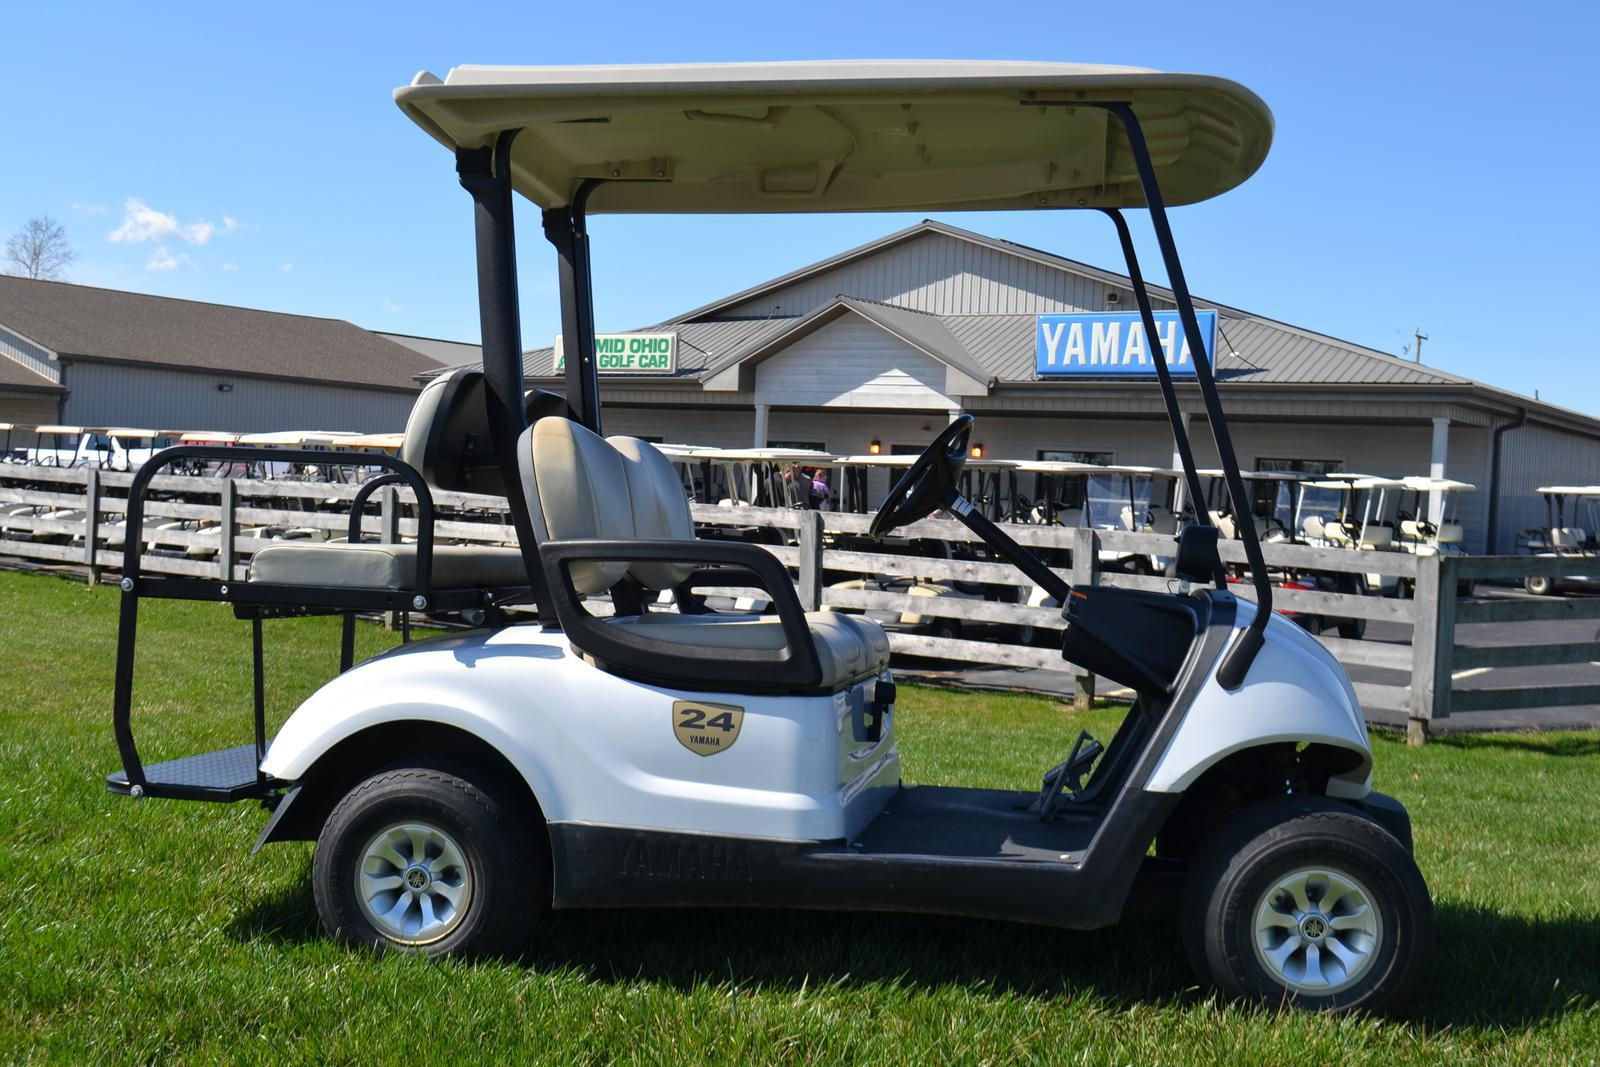 Rentals Mid Ohio Golf Car, Inc. Heath, OH 1 (800) 465-3318 on mercedes golf cart body, mercedes used accessories, used gasoline golf carts, mercedes golf cart craigslist, mercedes used trucks, polaris electric golf carts, used cadillac golf carts,